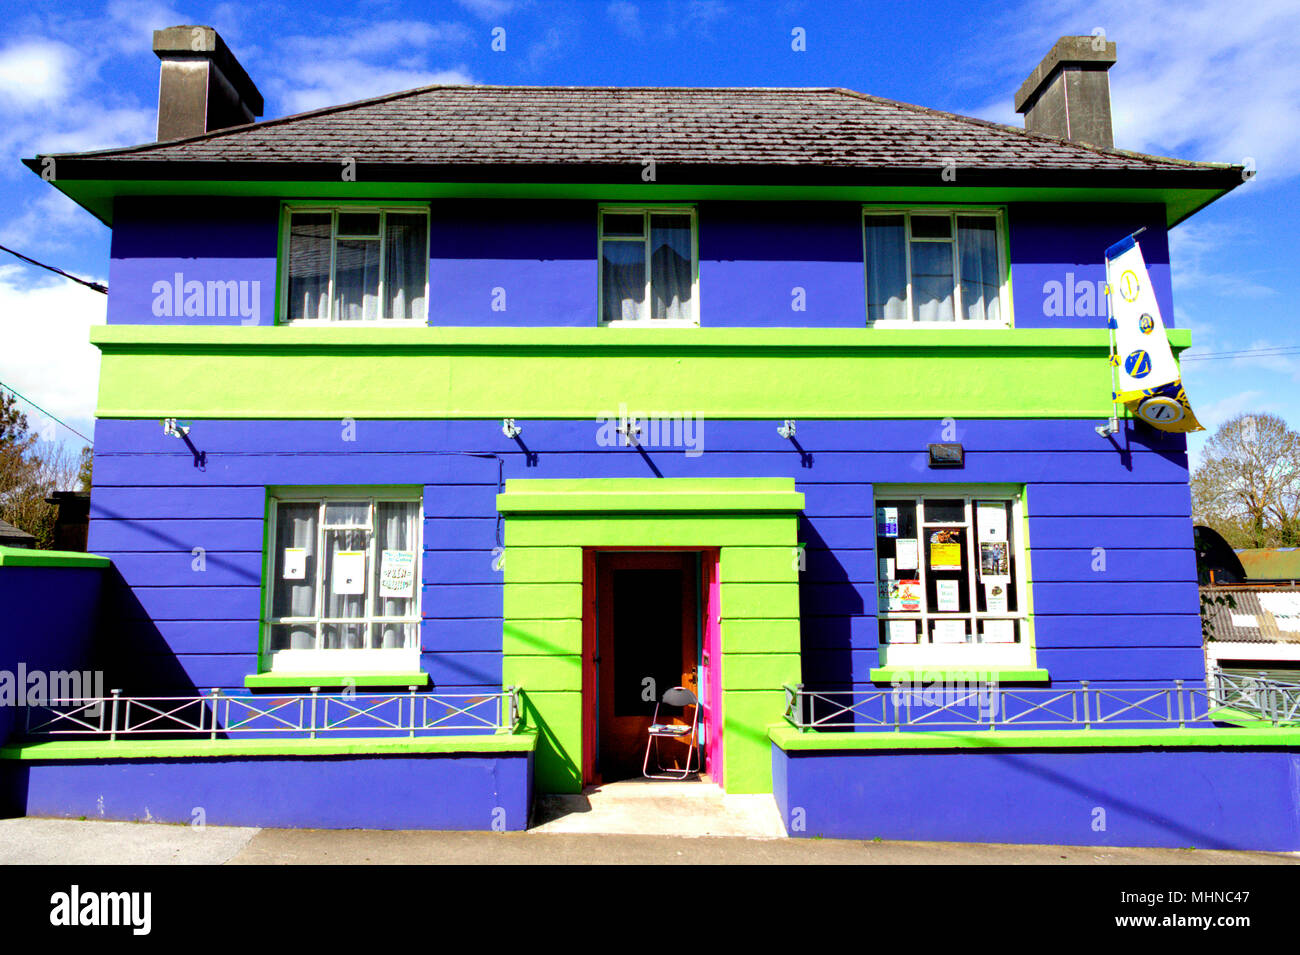 brightly-coloured-or-colored-vivid-blue-and-green-brick-built-building-a-converted-domestic-house-standing-out-in-the-midday-sun-MHNC47.jpg